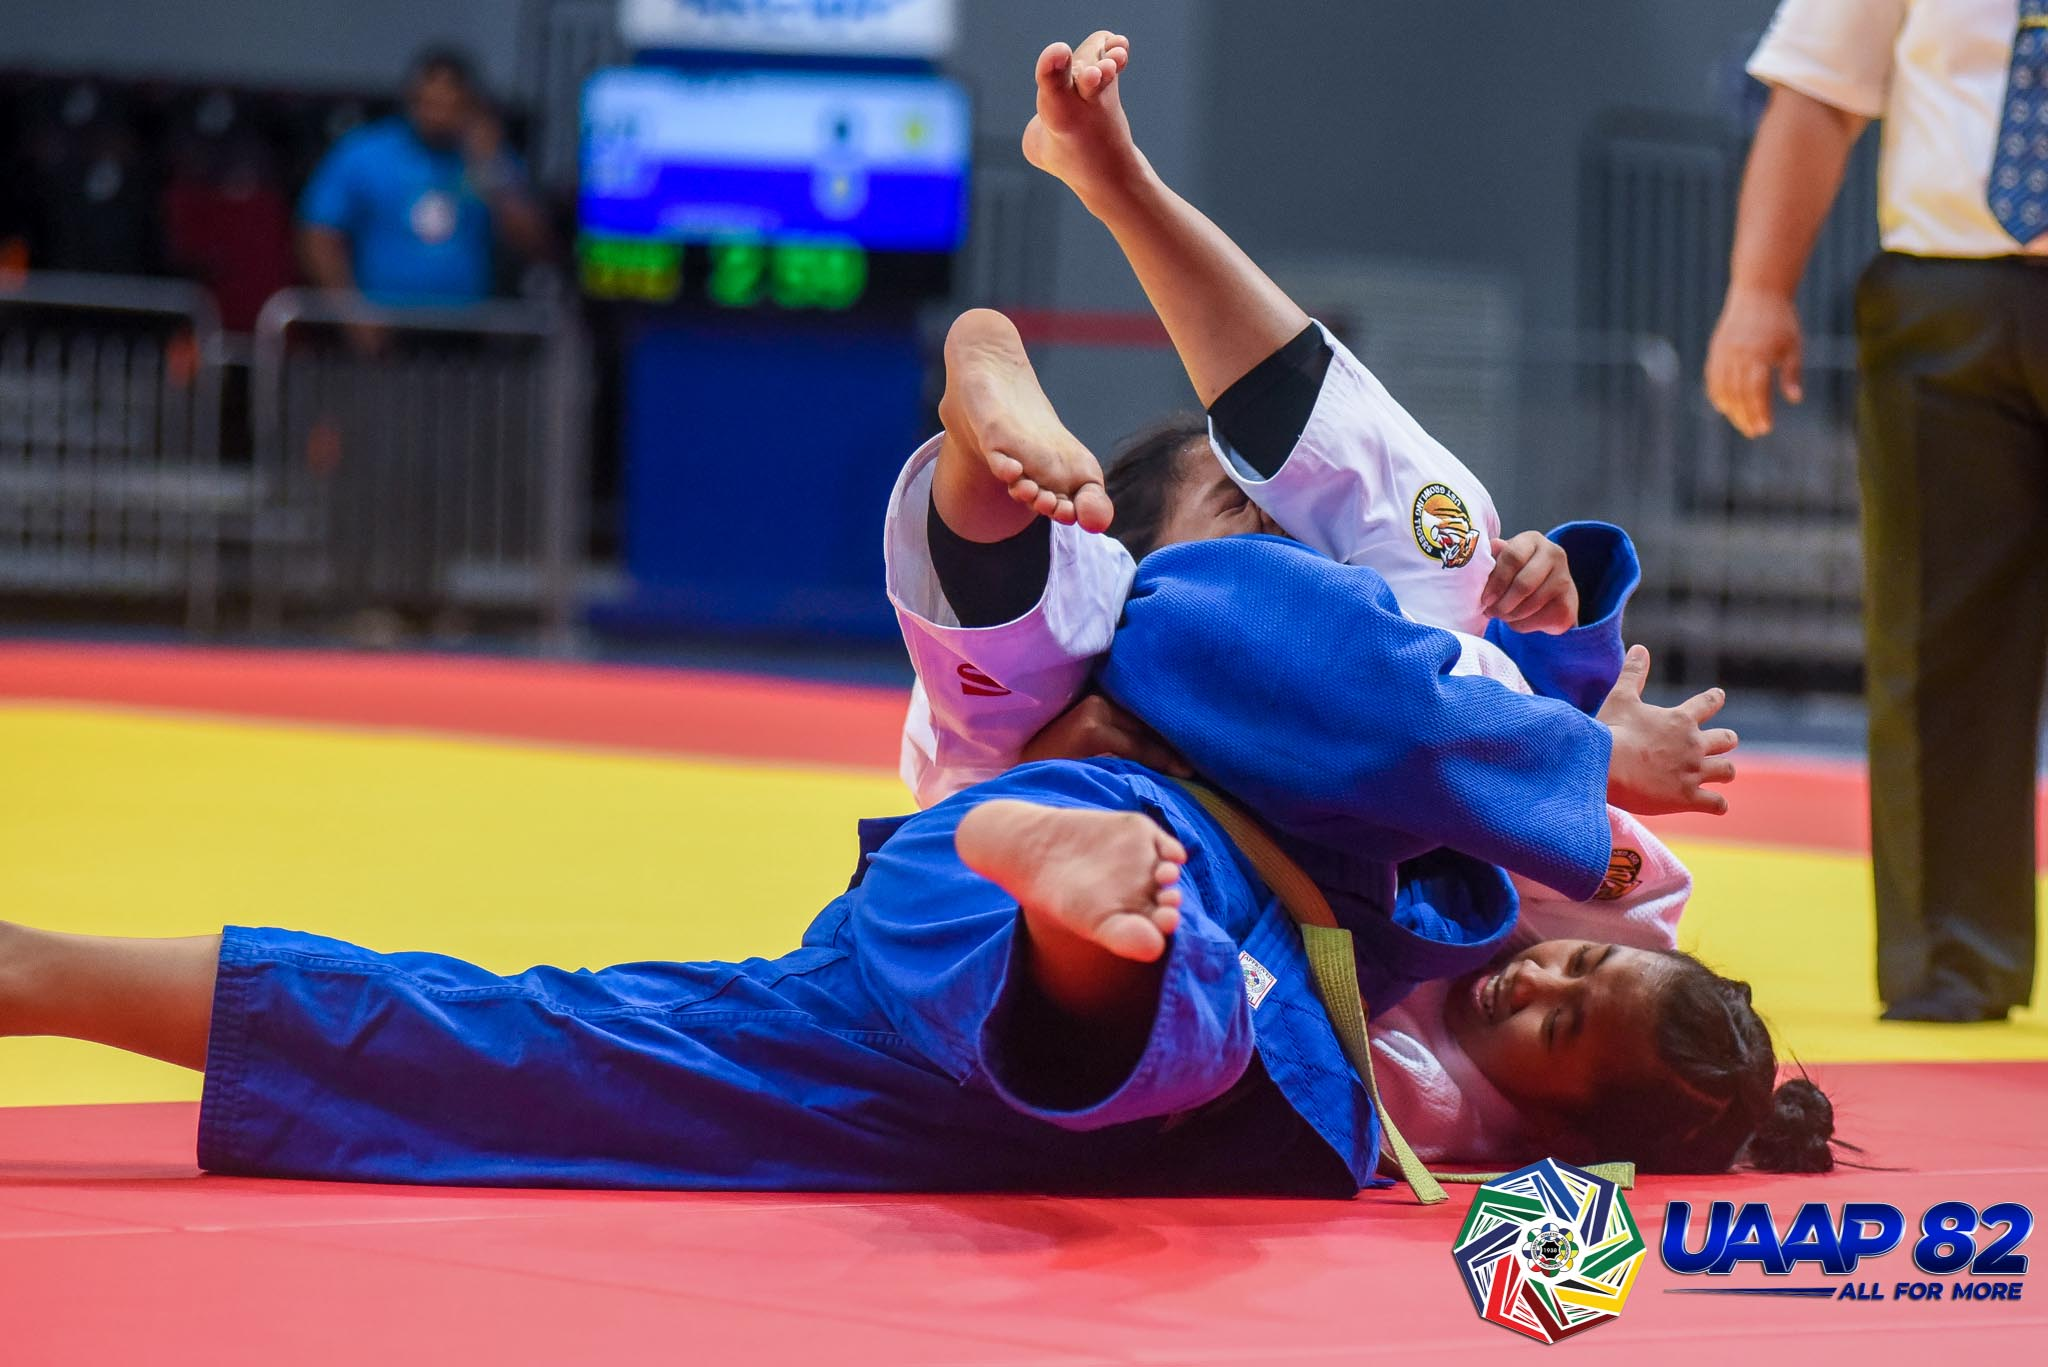 UAAP82-JUDO-JRS-63KG-GIRLS-1ST-PHOTO-WHITE-IMAI-UST-BLUE-RAMOS-ADMU Donaire, Saria lead DLSZ to surprising start in UAAP 82 HS Judo as Quimba sisters give UST early lead ADMU DLSU FEU Judo News UAAP UE UST  - philippine sports news